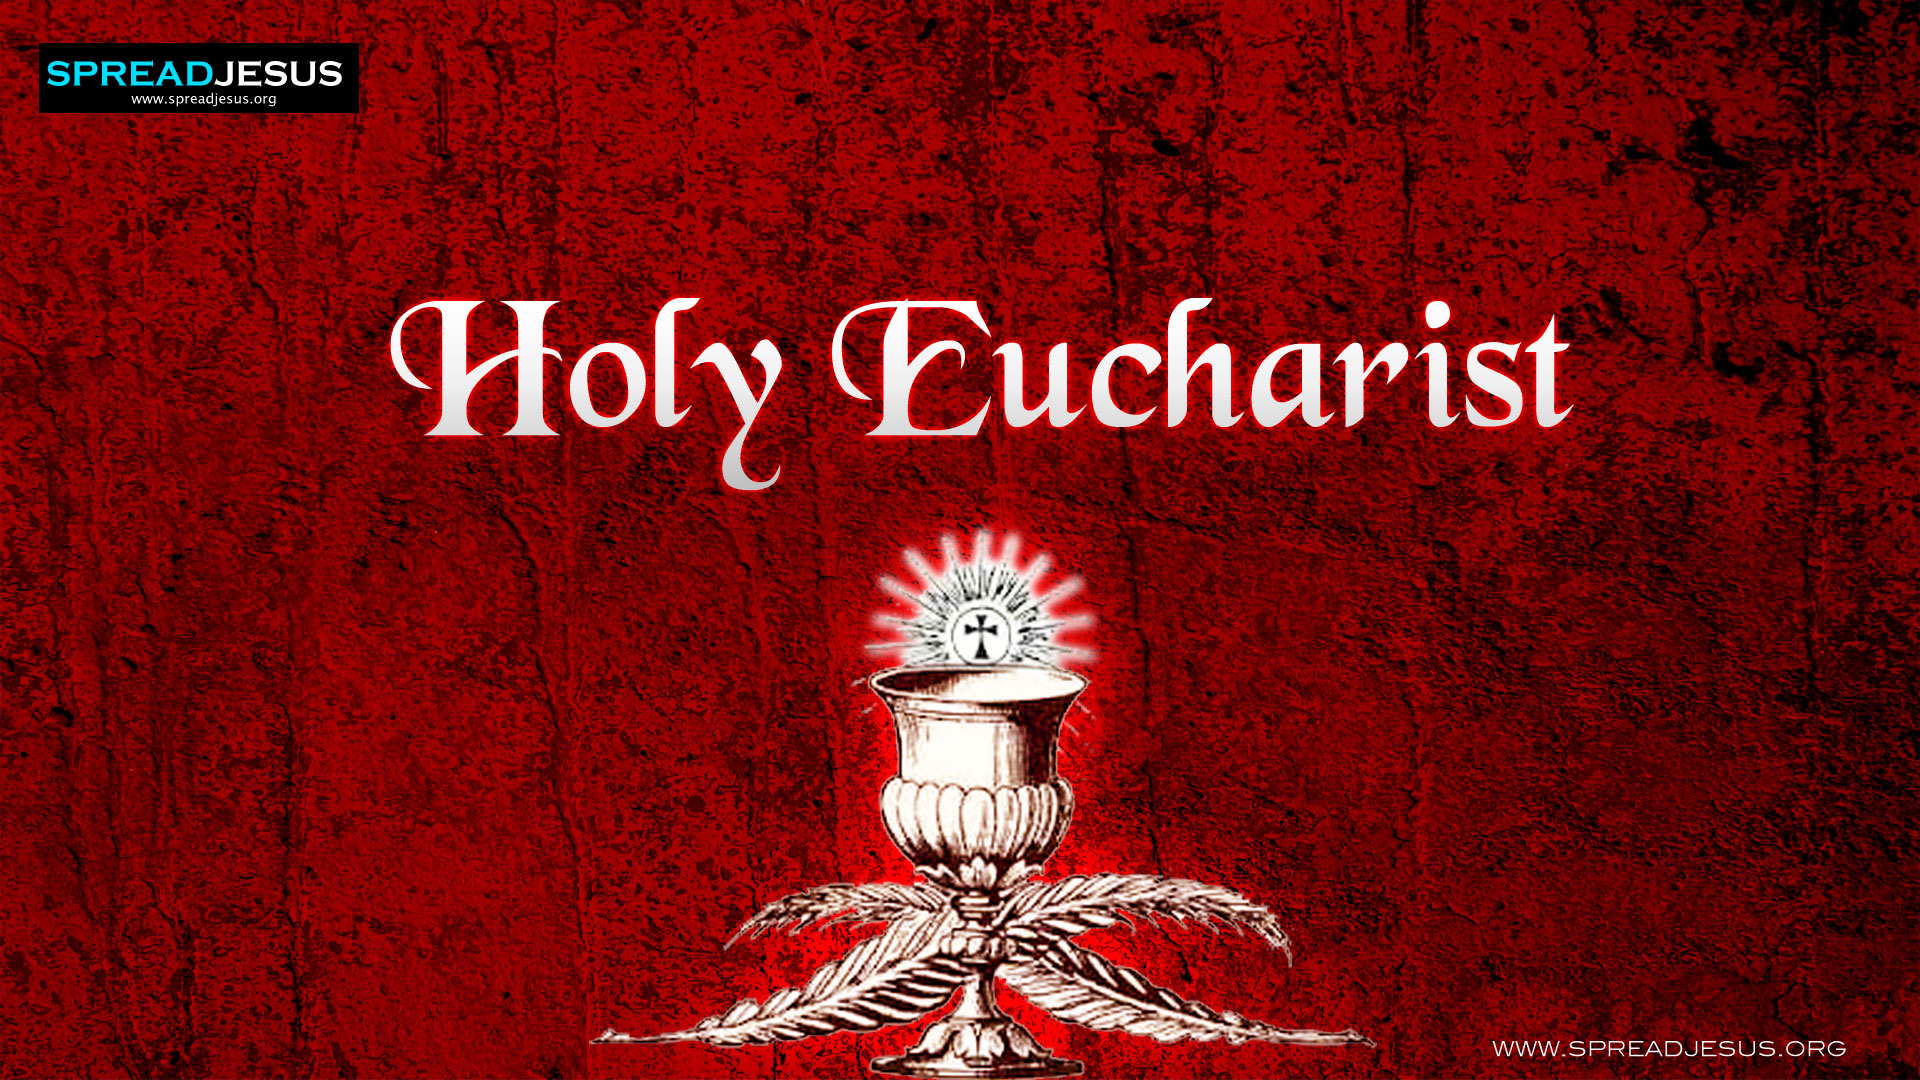 EUCHARIST-The seven sacraments of the church Through Eucharist, we are united with the Lord's Body and Blood.